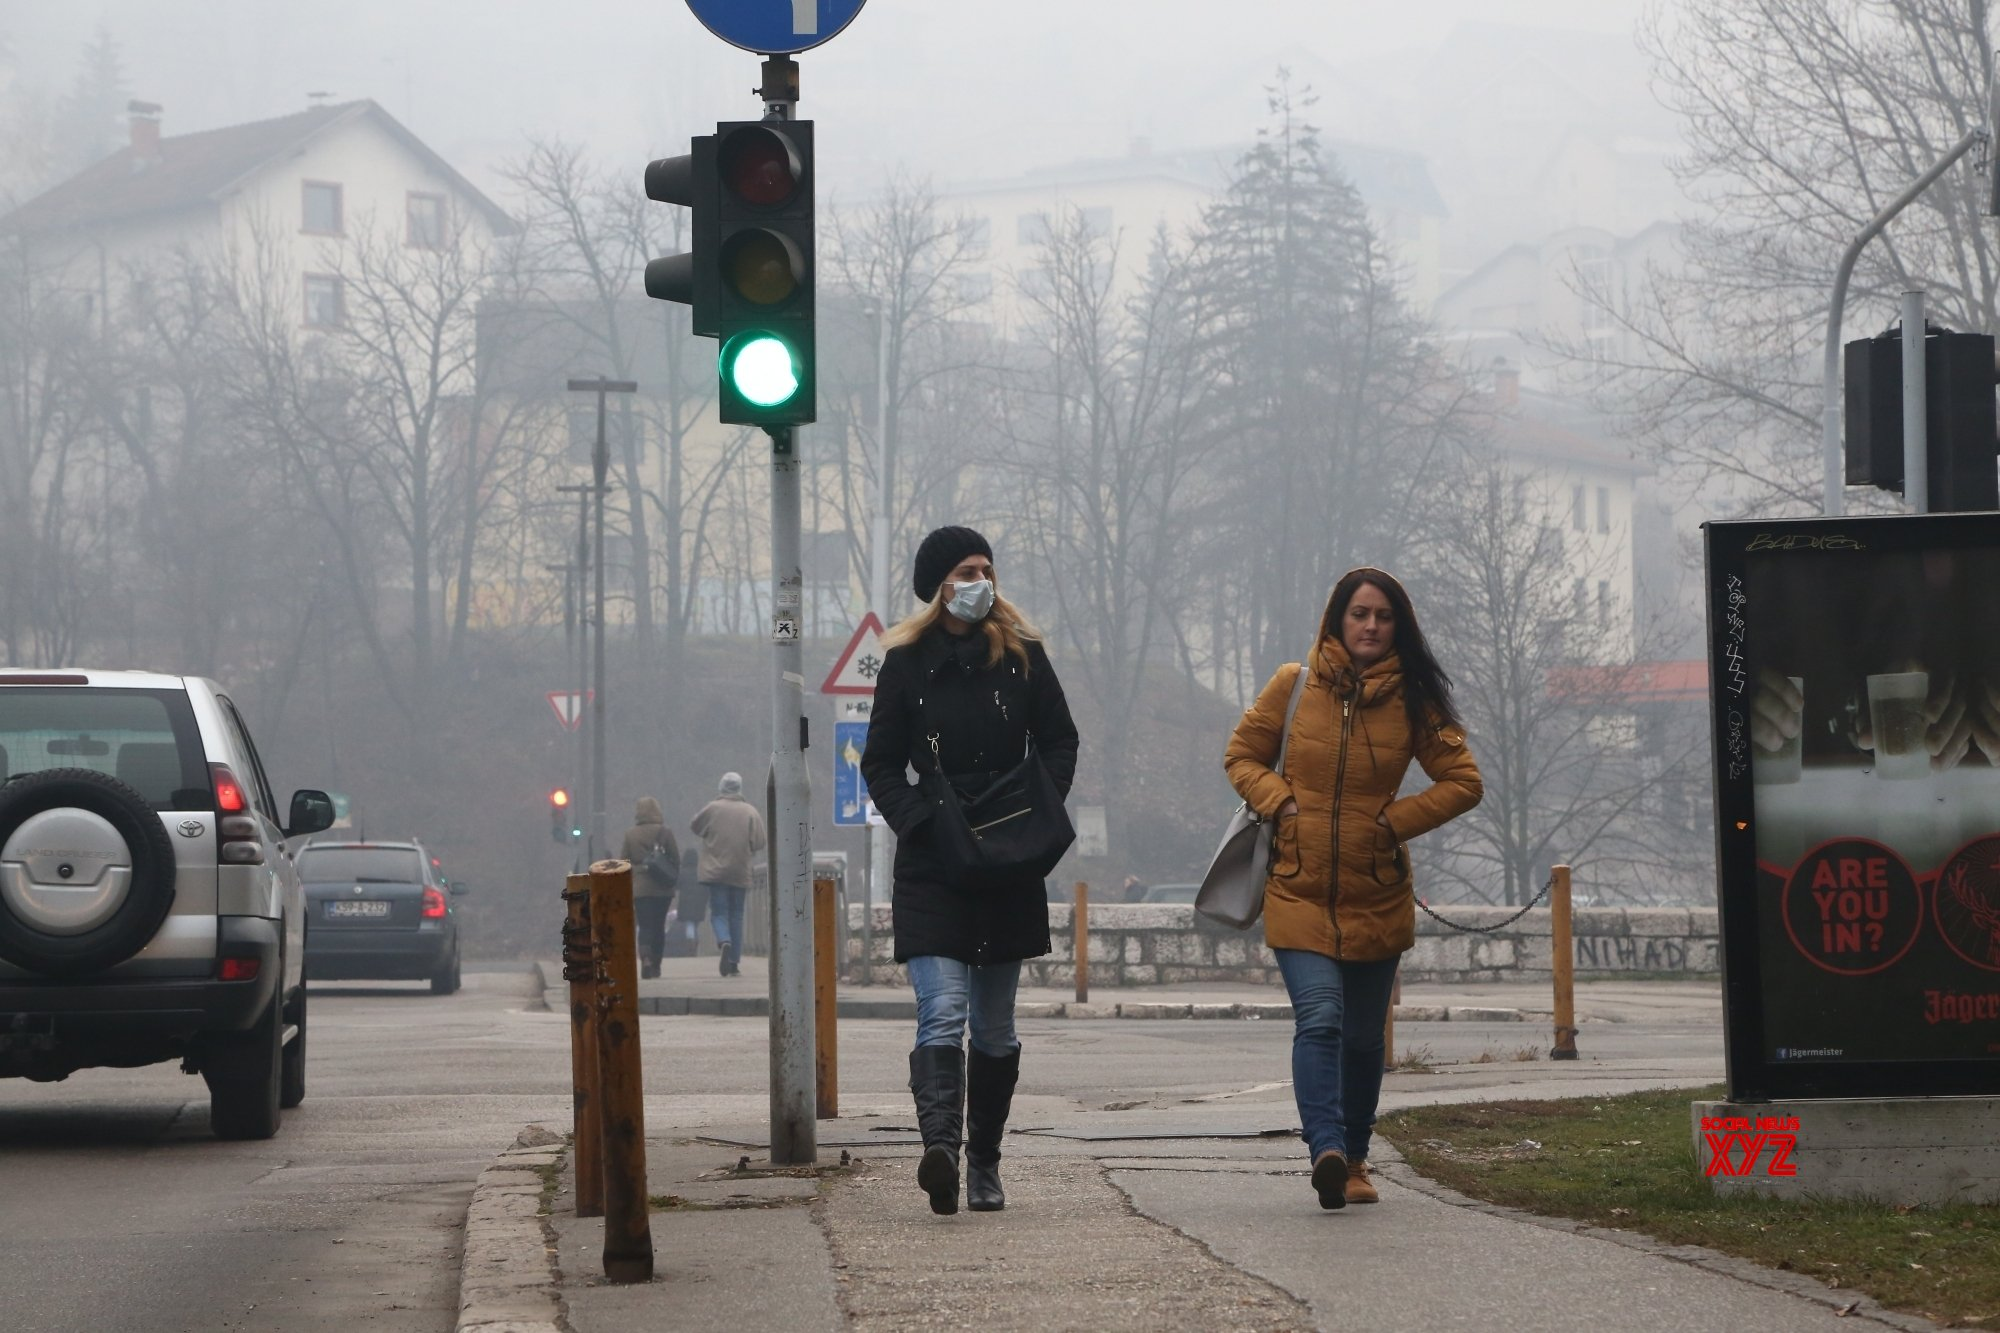 Air pollution linked to high BP in children, young adults